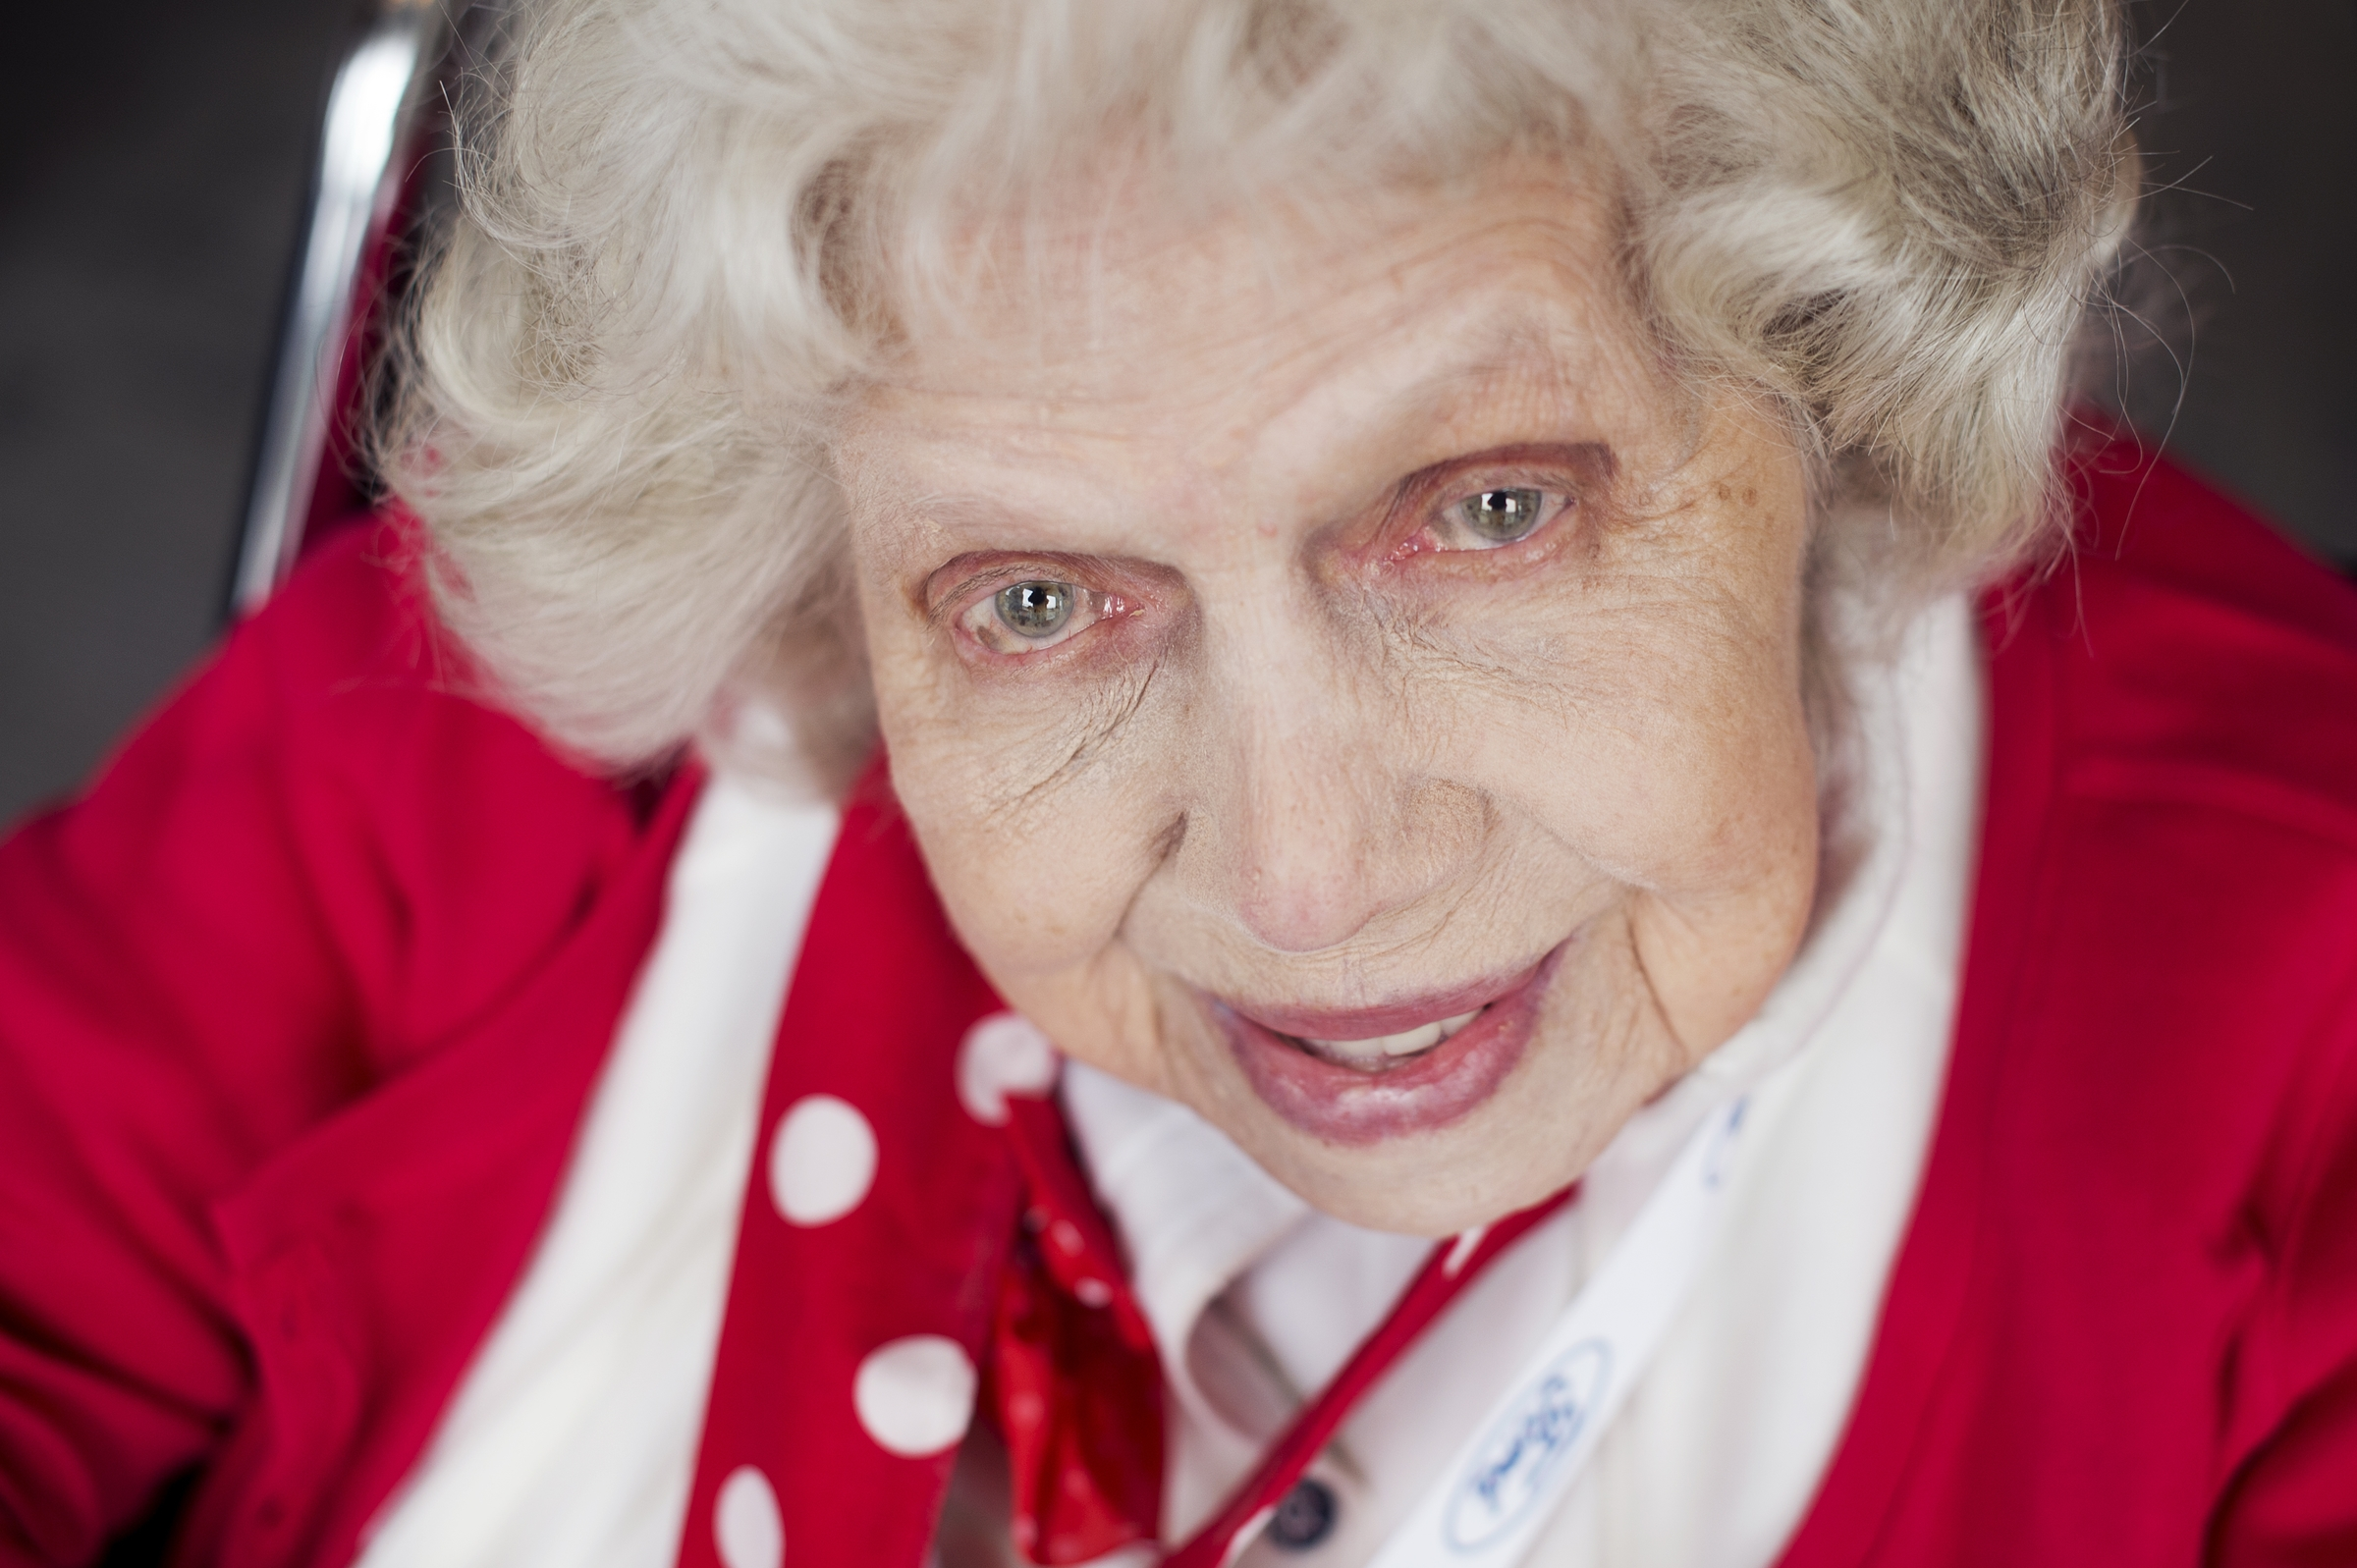 UNITED STATES - MARCH 22: Phyllis Lenhard, a World War II era Rosie the Riveter, is photographed during a lunch for a group of about 30 Rosies at the Library of Congress, March 22, 2016. They were part of an Honor Flight from Detroit who were on a tour of D.C. that included stops on Capitol Hill, the World War II Memorial, and Arlington National Cemetery. (Photo By Tom Williams/CQ Roll Call)